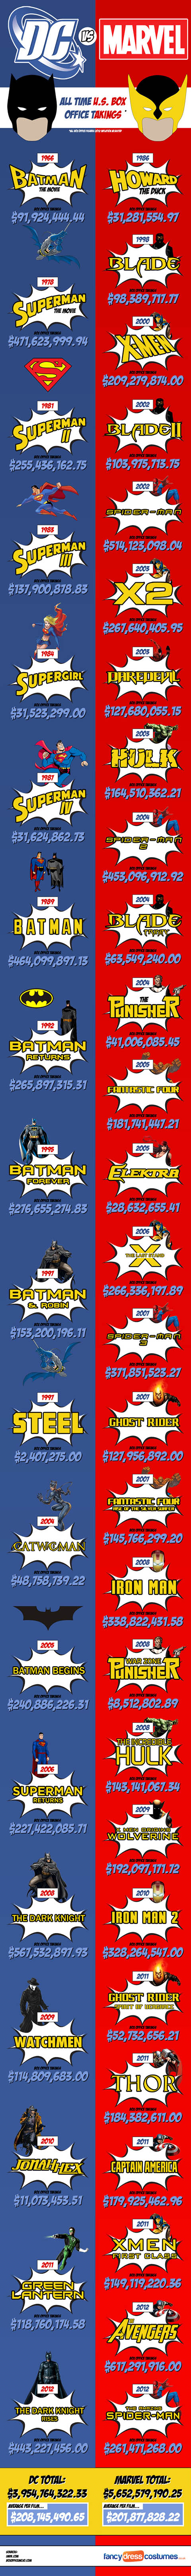 dc comics marvel box office resultat comparaison